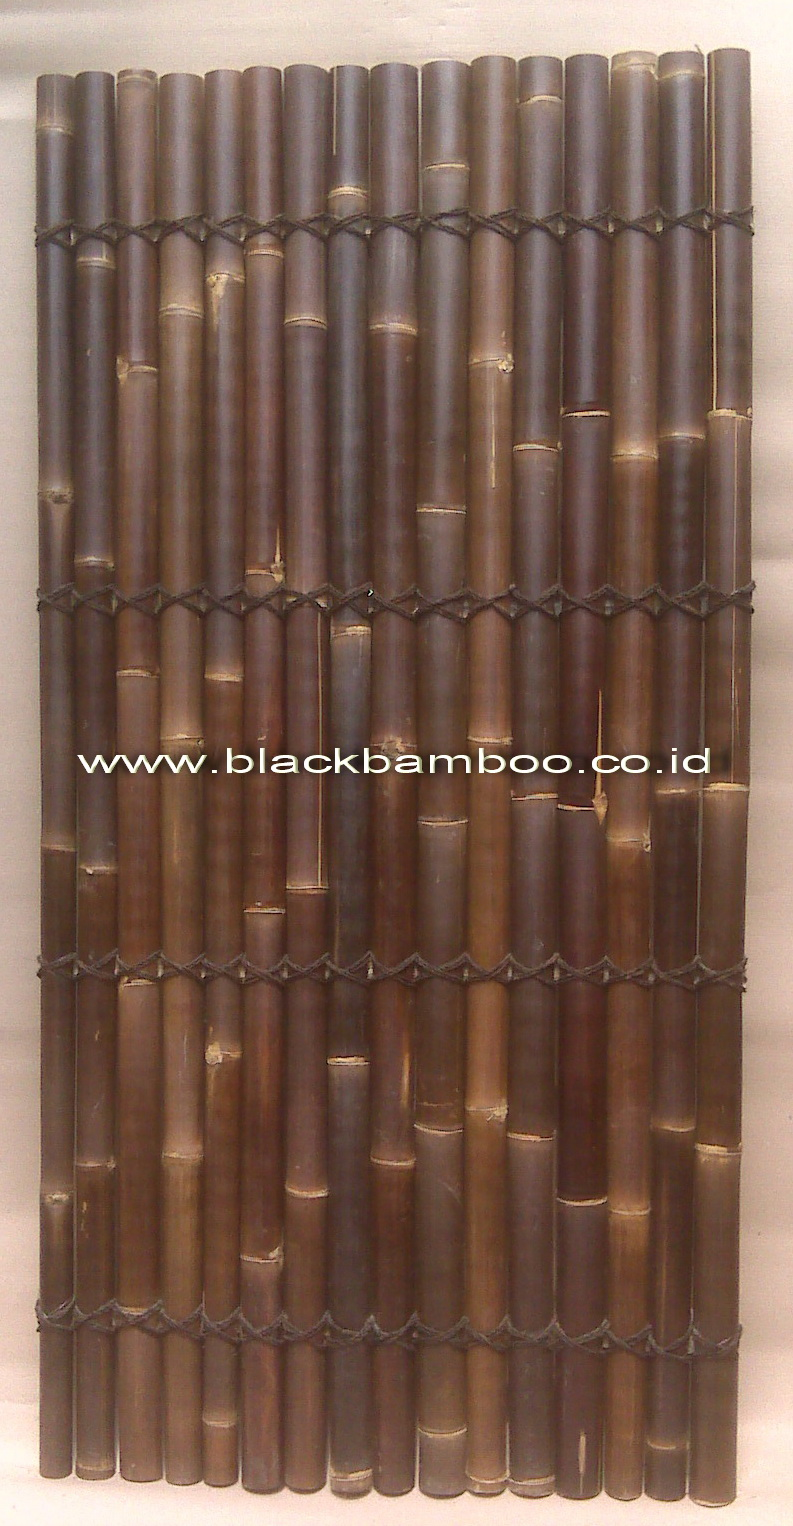 BLACK BAMBOO FENCE 200 X 100